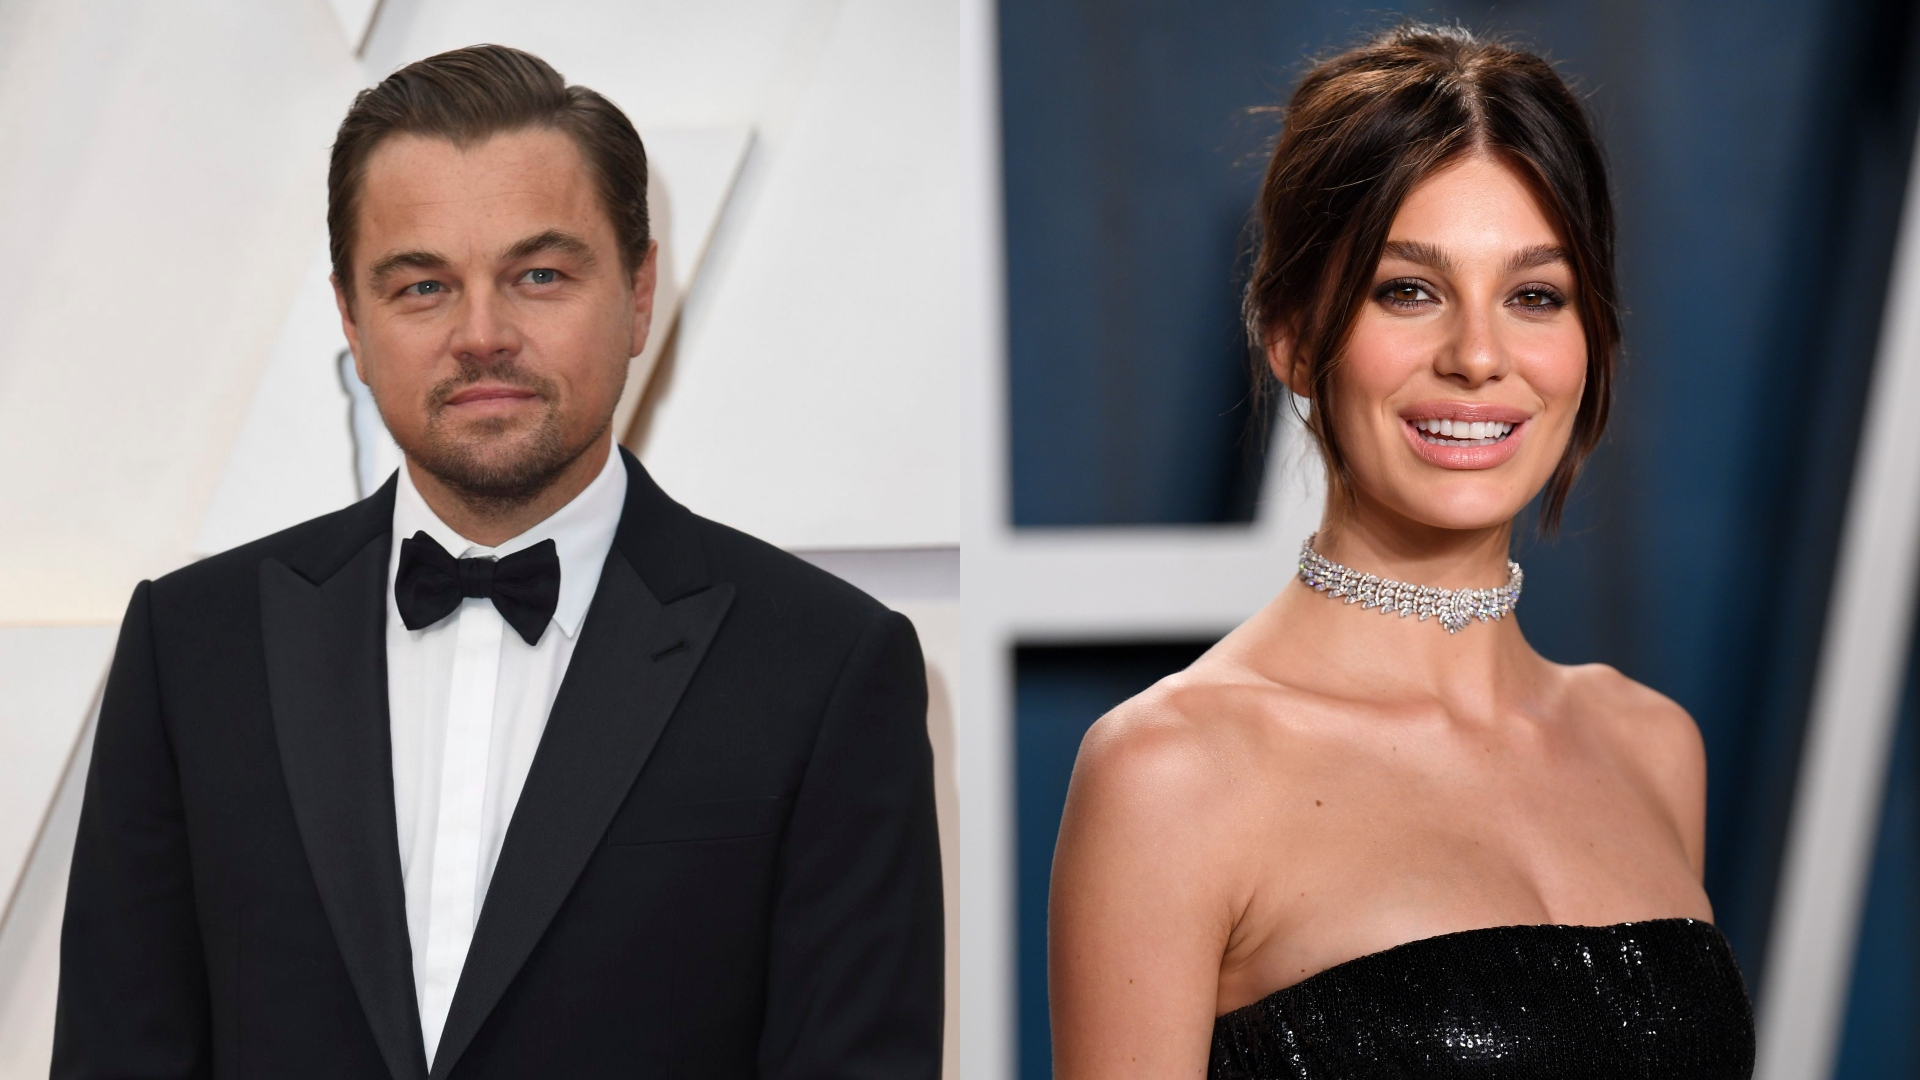 23 Celebrity Couples With Significant Age Differences